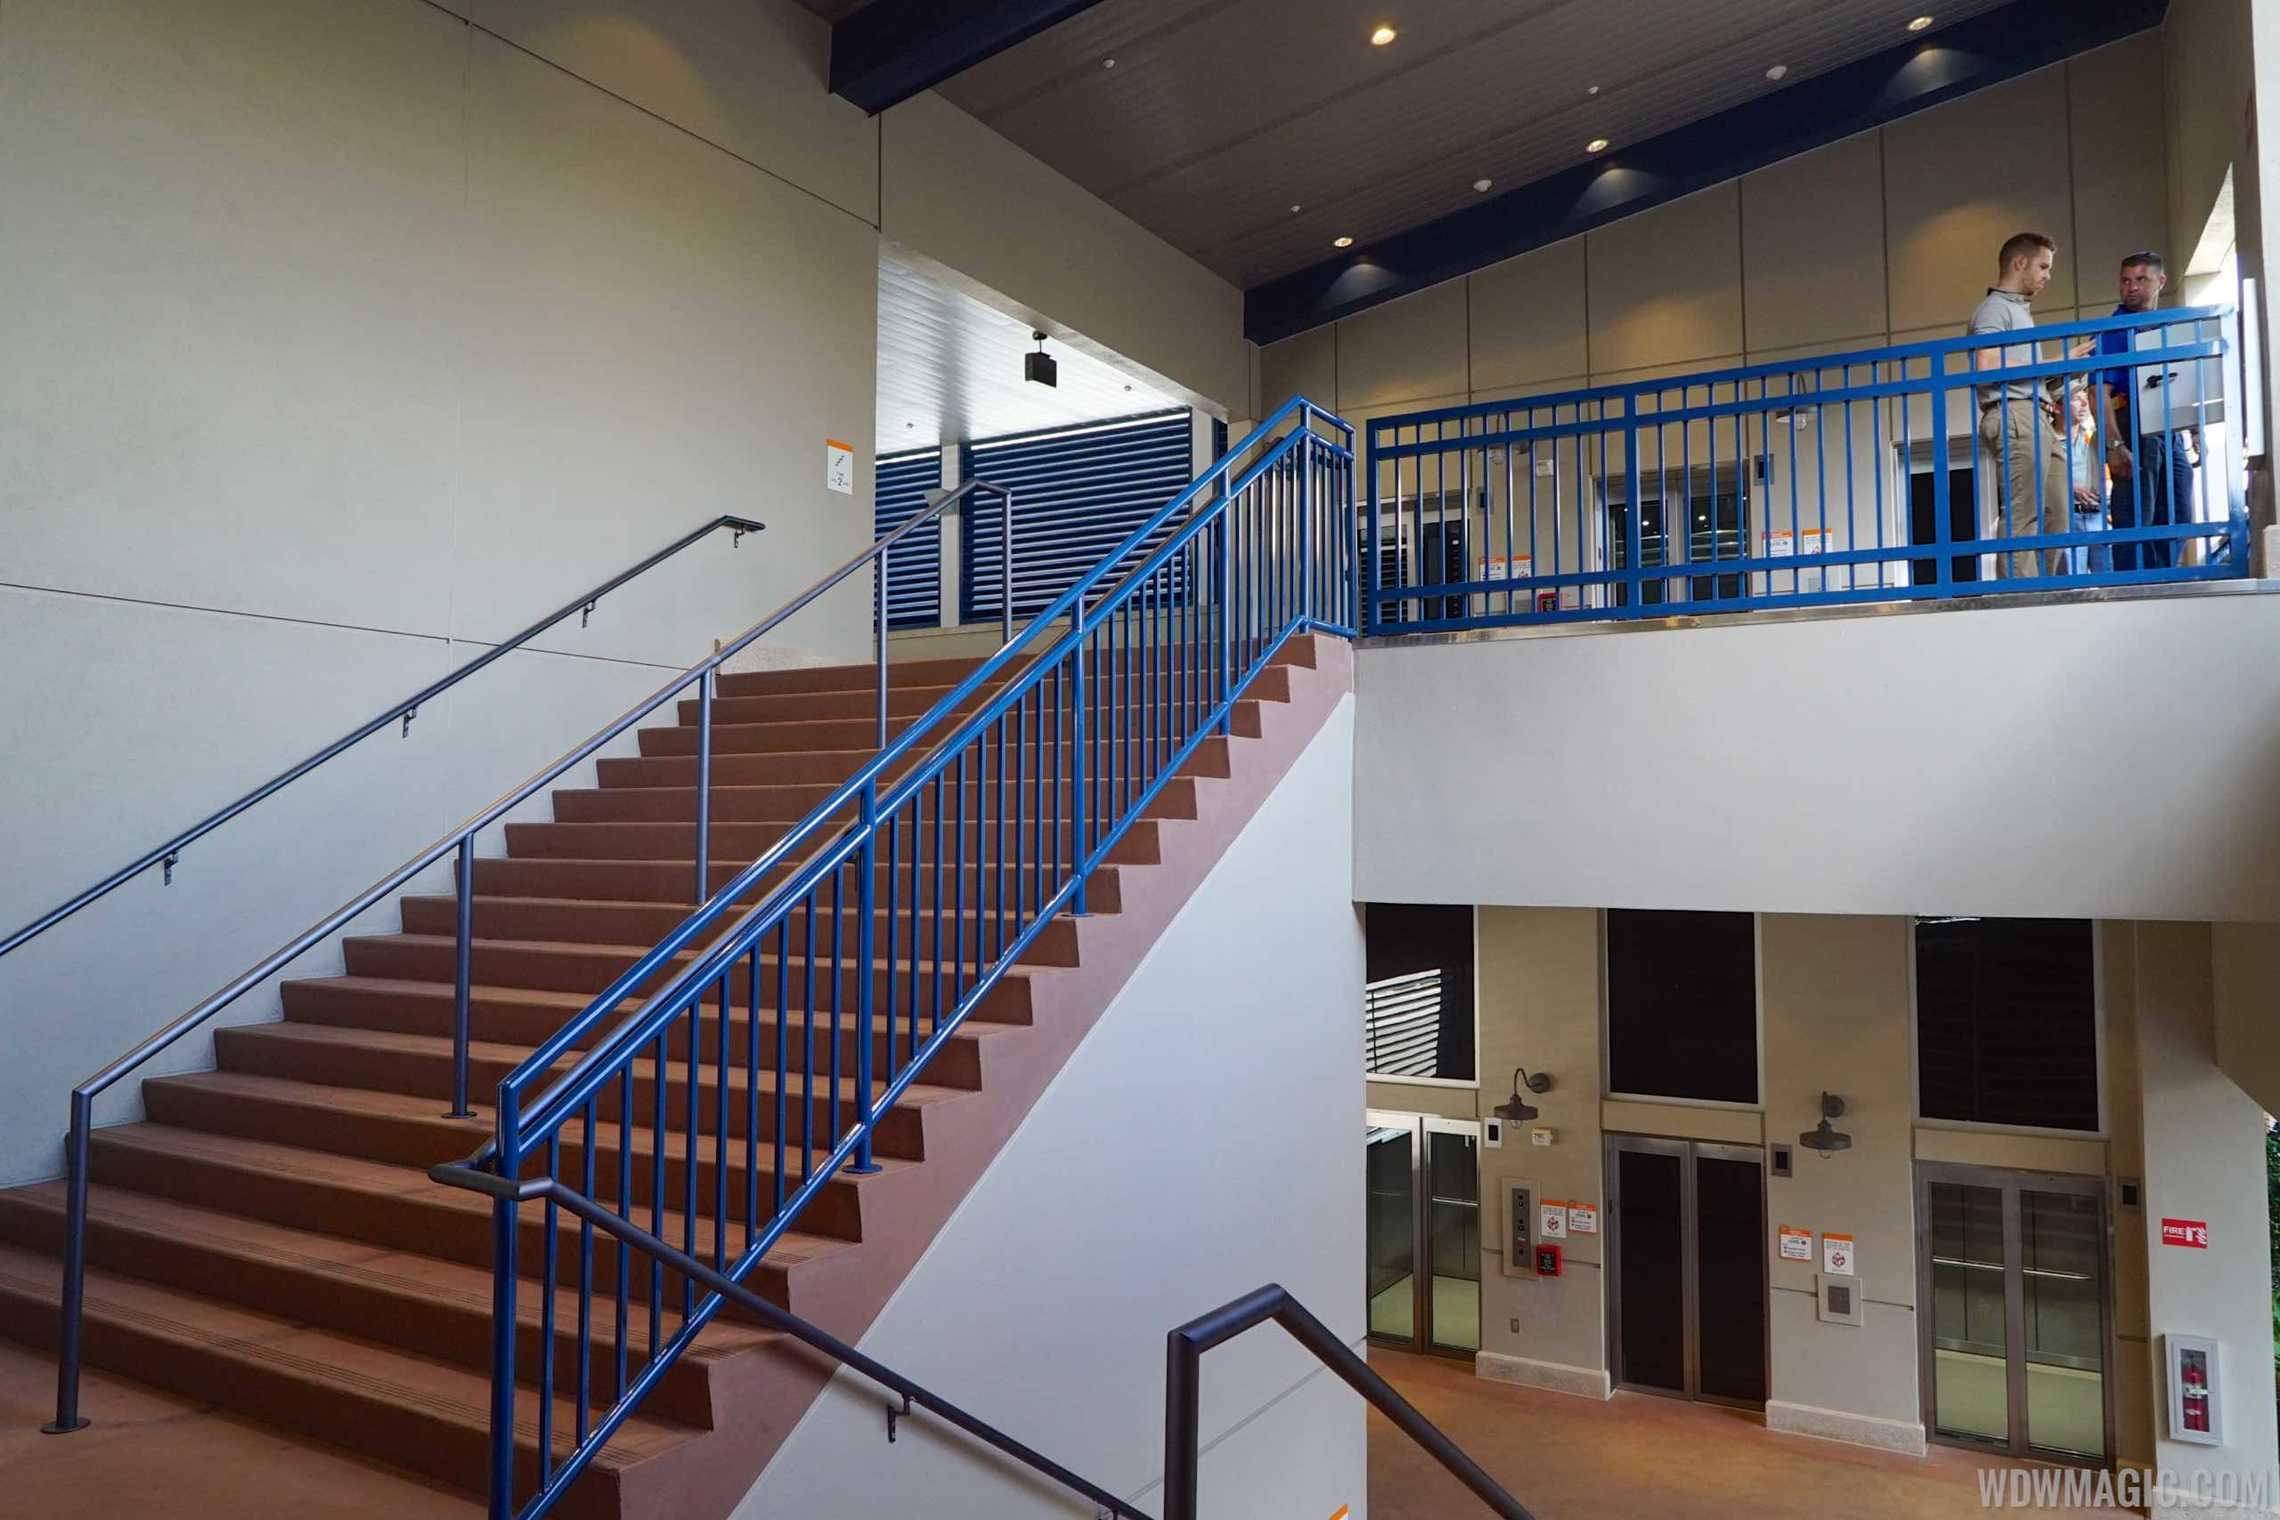 Disney Springs Orange Parking Garage east connector - Stairway to Level 2